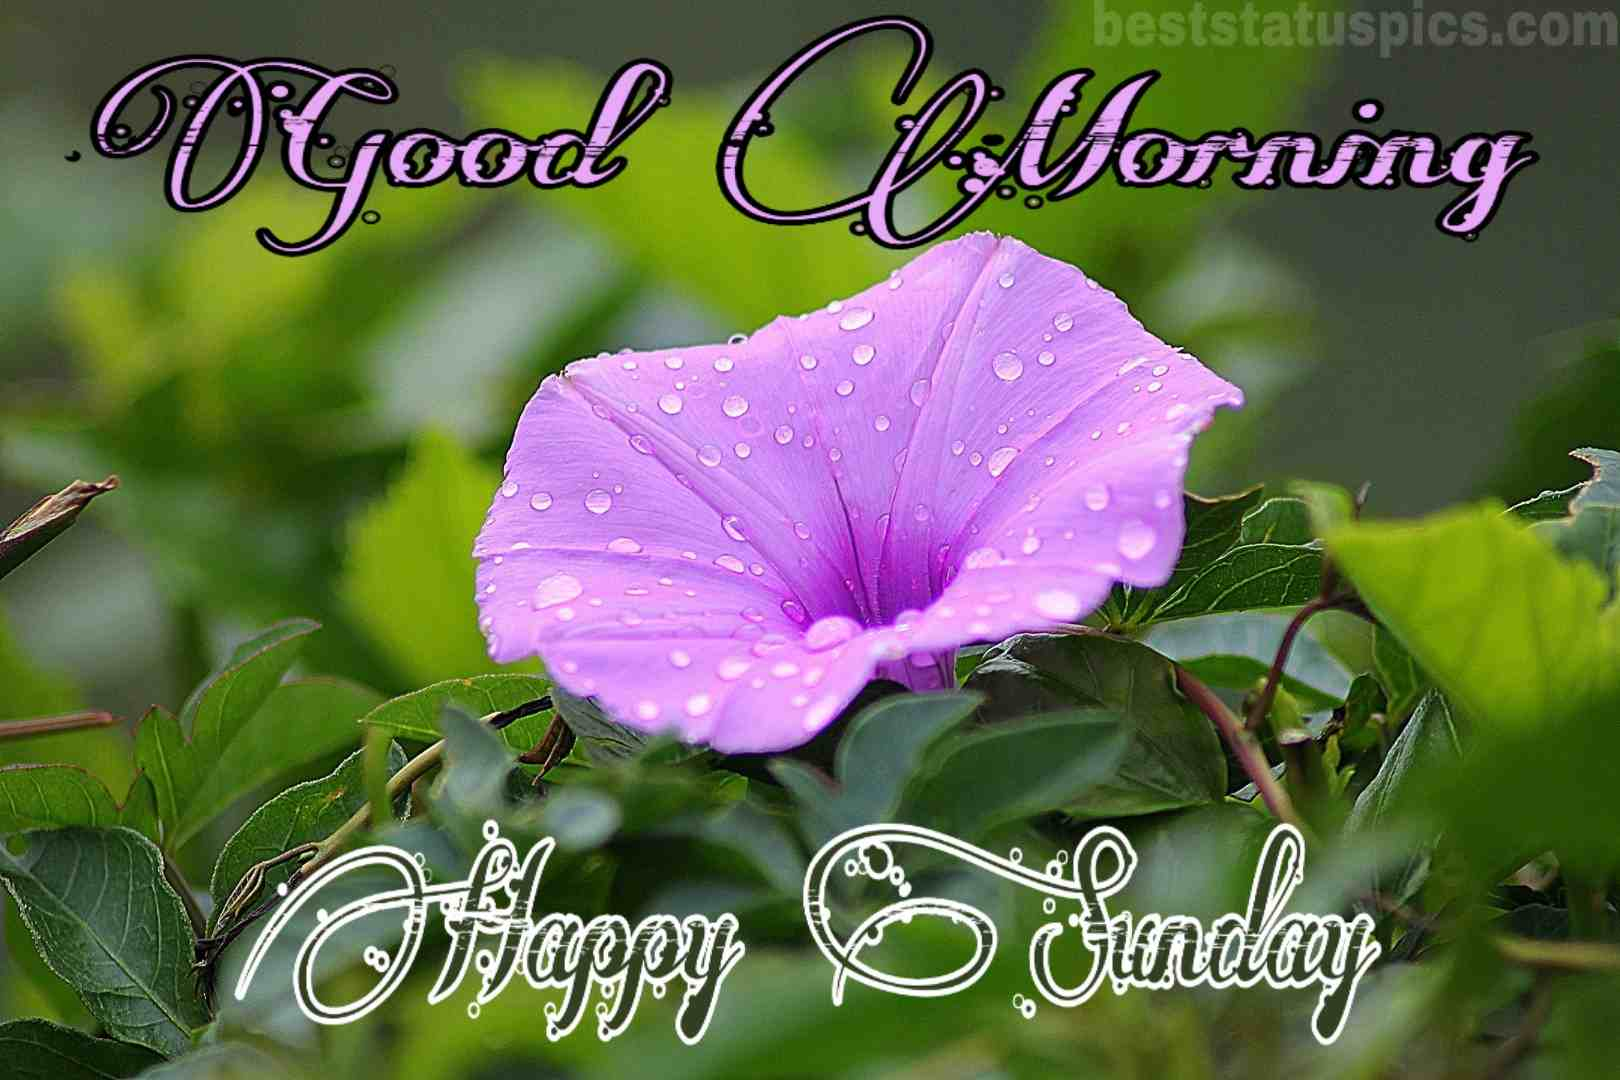 Good Morning Happy Sunday Images For Whatsapp Dp 2020 Best